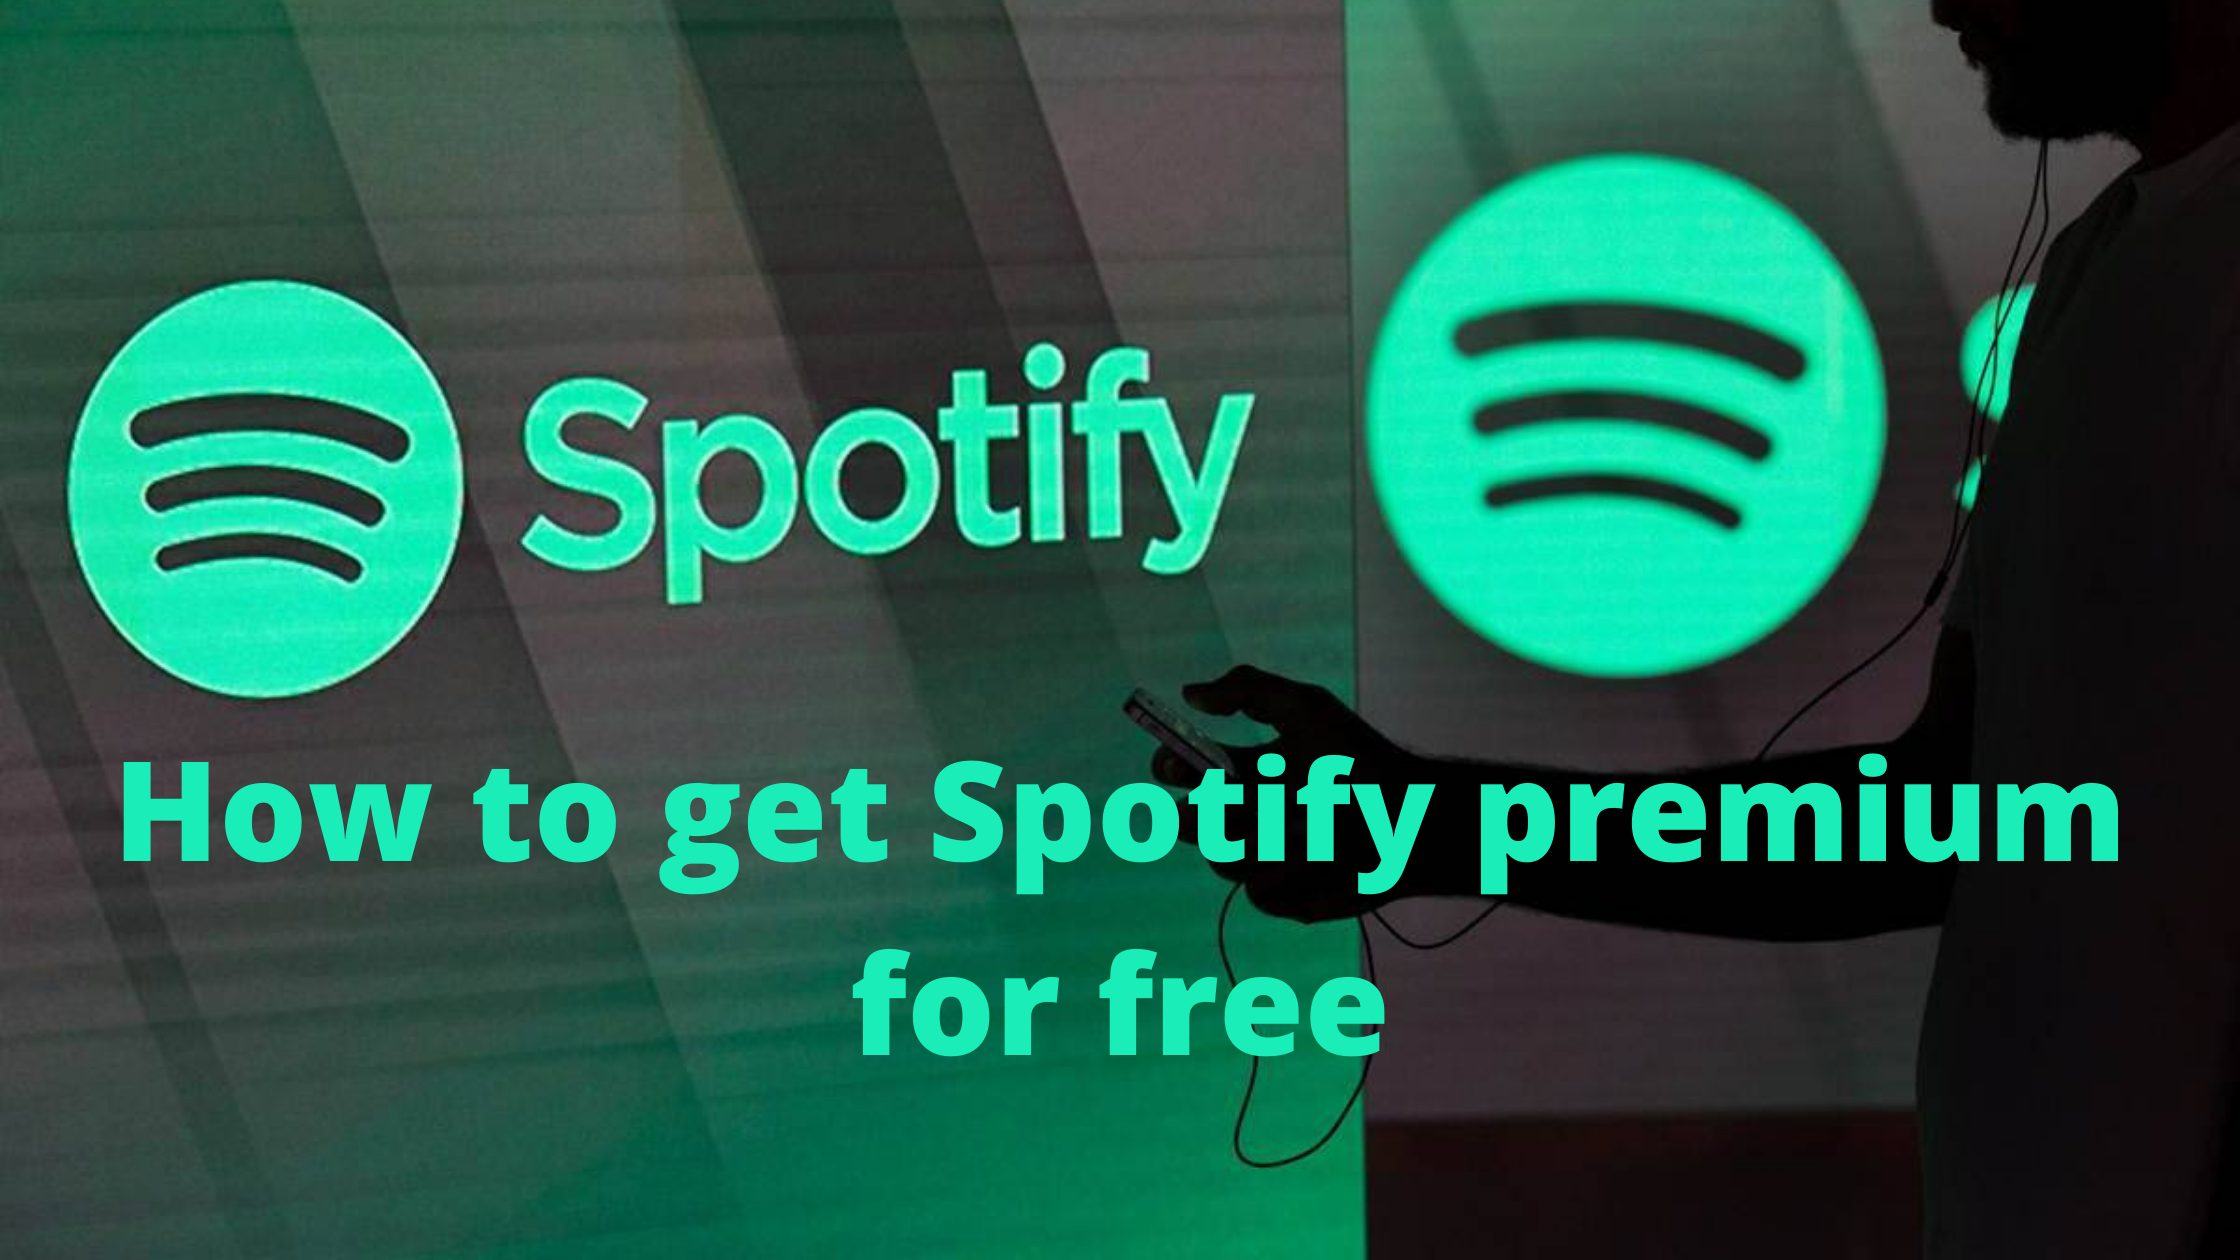 How to get Spotify premium for free